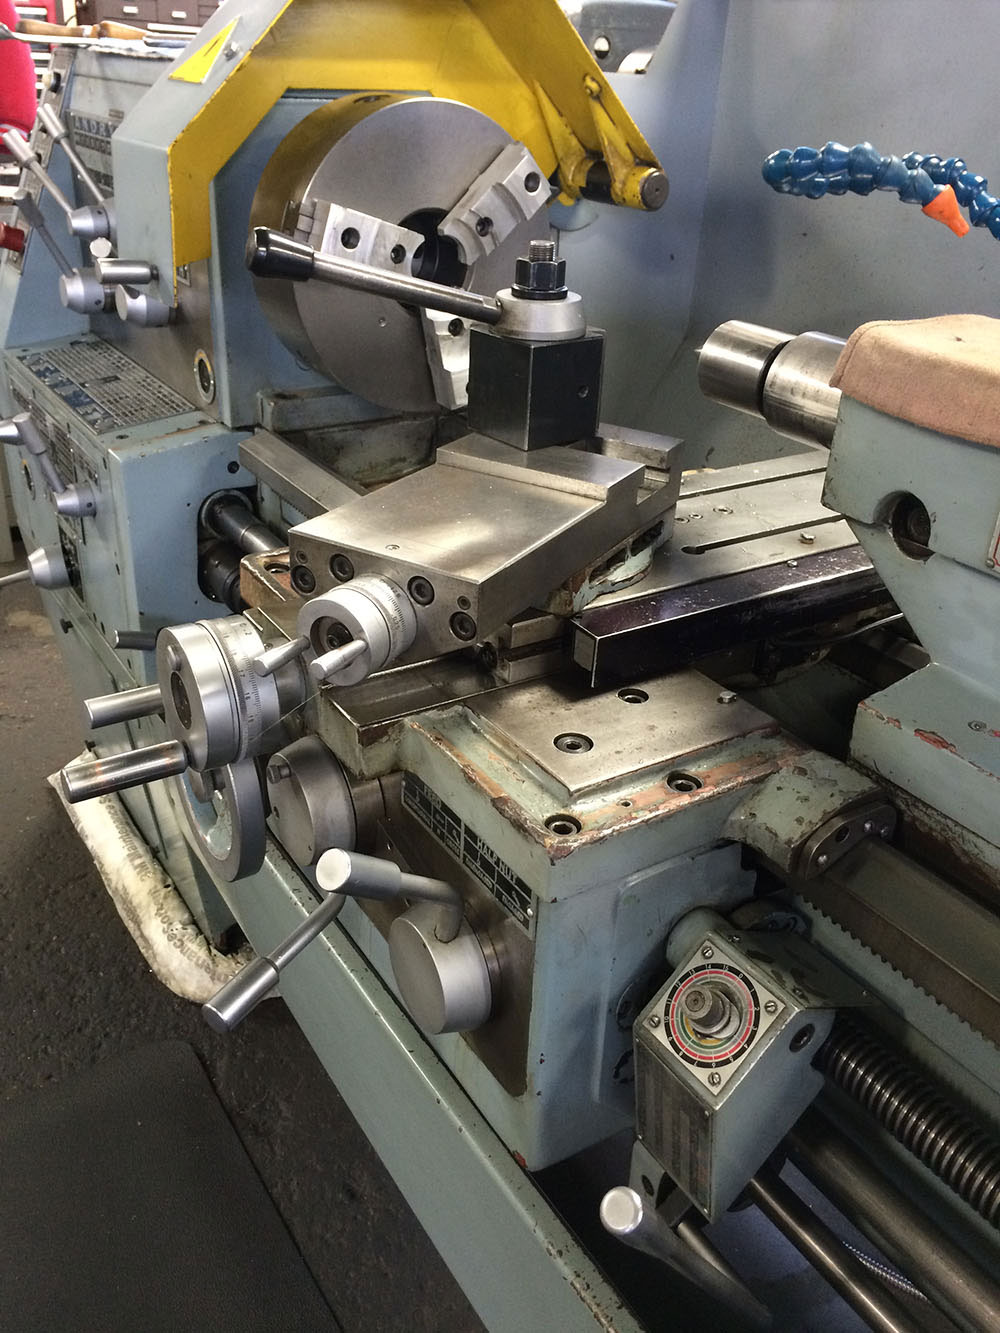 Toolmex Polish Manual Lathe Outfitted with Aluminum Soft Jaws